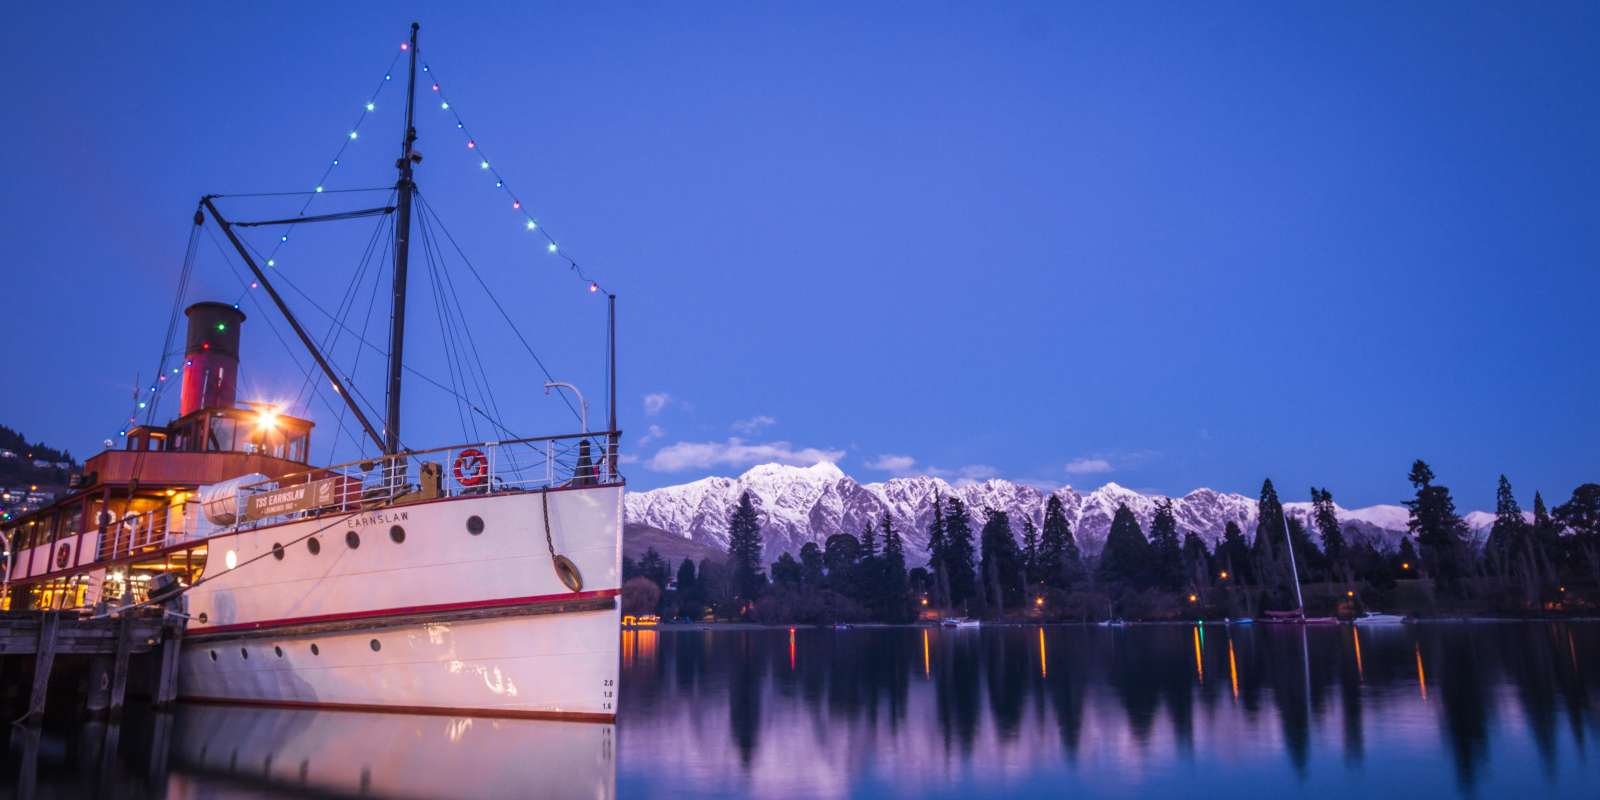 TSS Earnslaw at Dusk